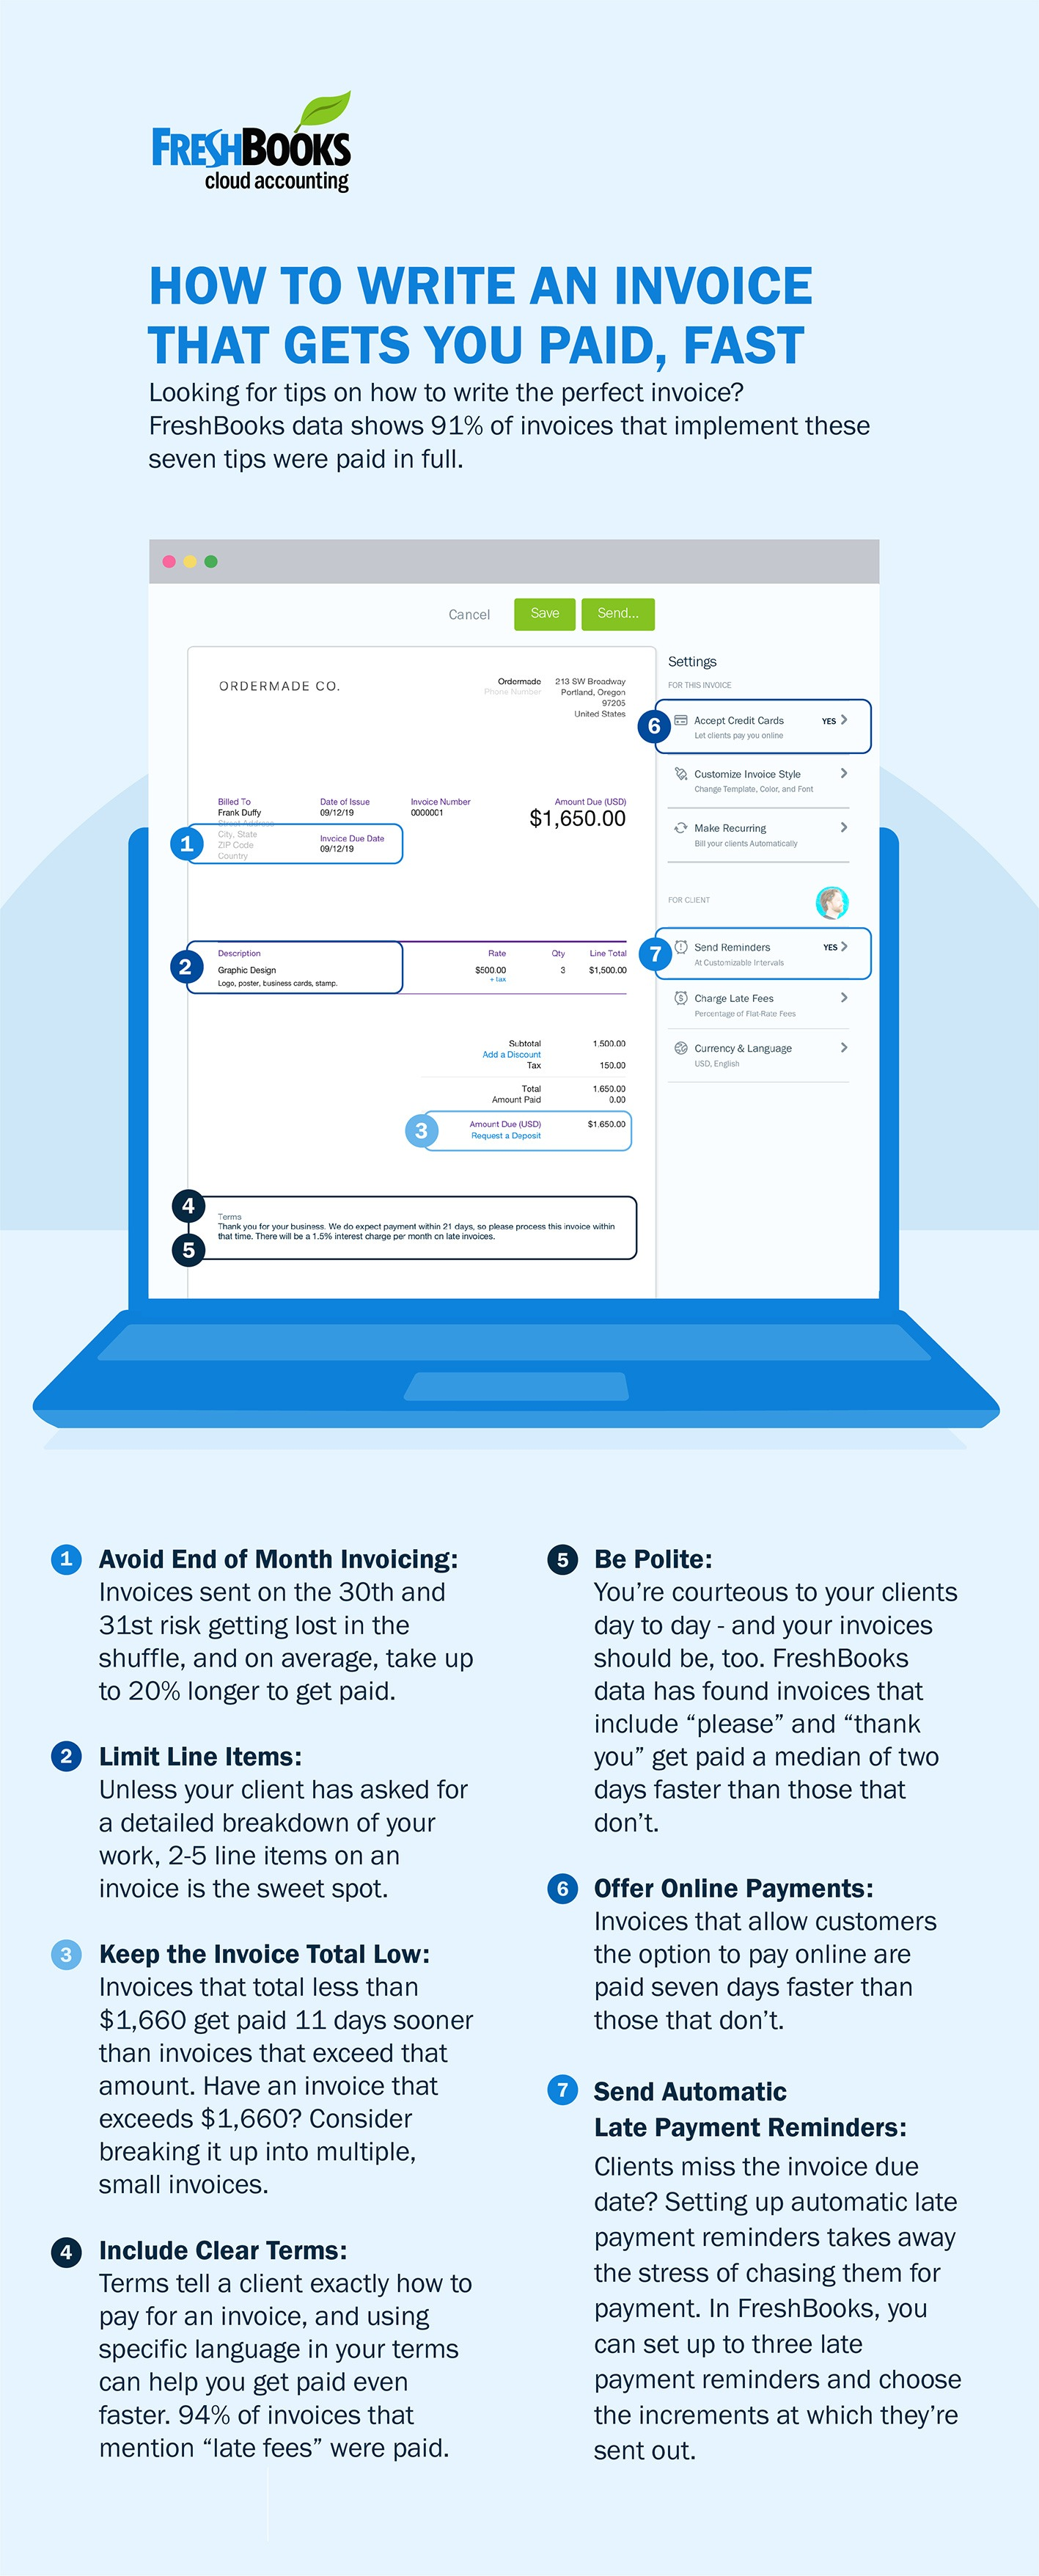 Infographic: Write an Invoice That Gets You Paid